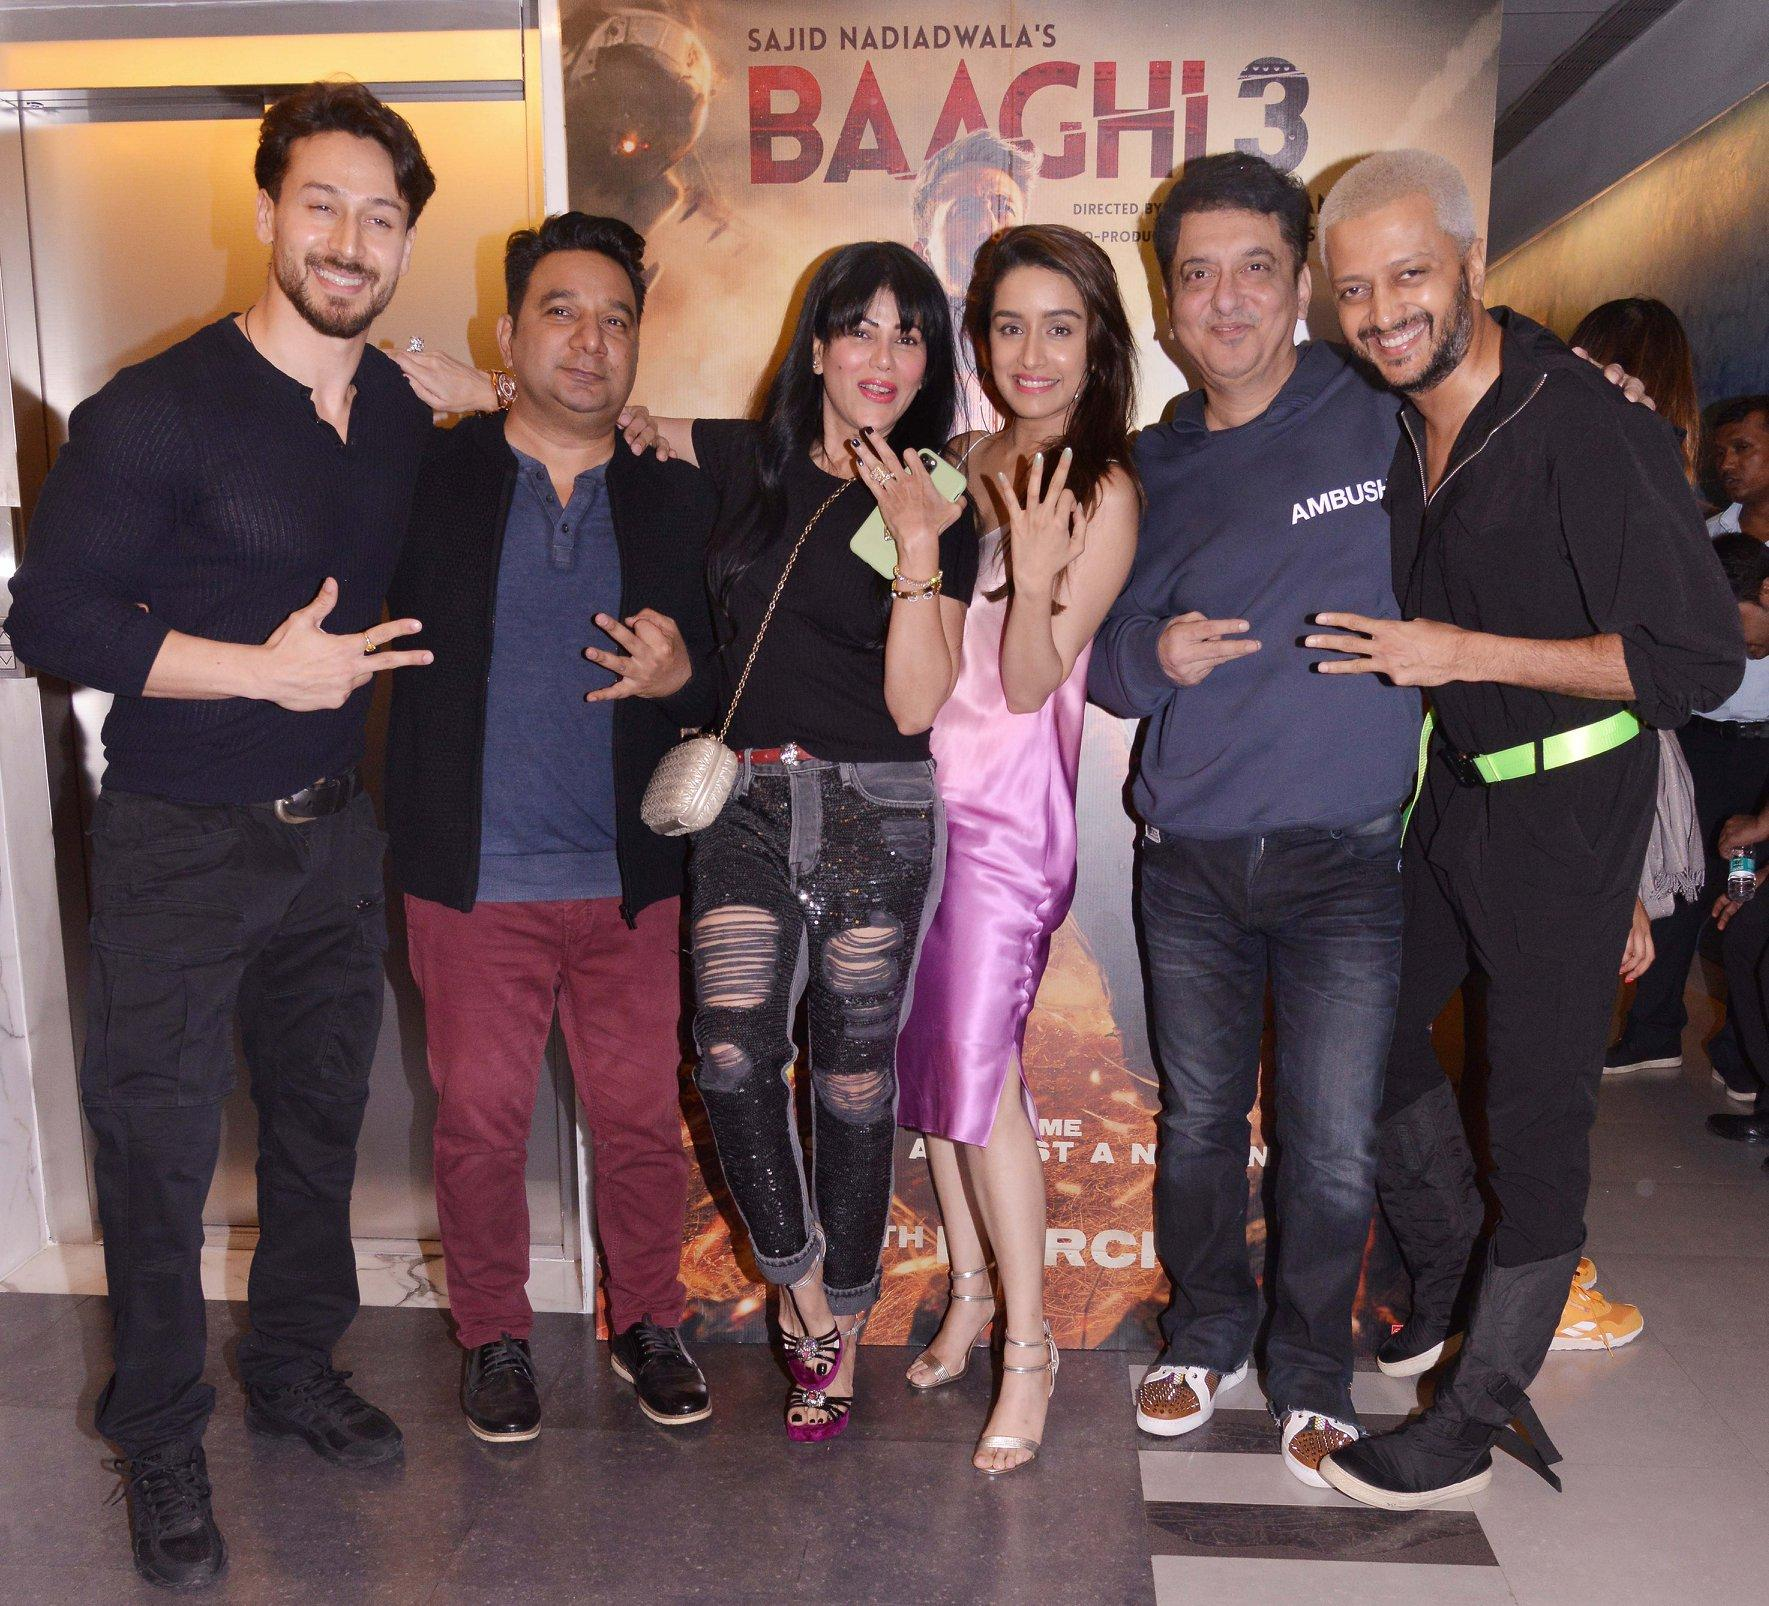 Baaghi 3 Screening - Tiger Shroff, Shradhdha Kapoor and Riteish Deshmukh with producer Sajid Nadiadwala